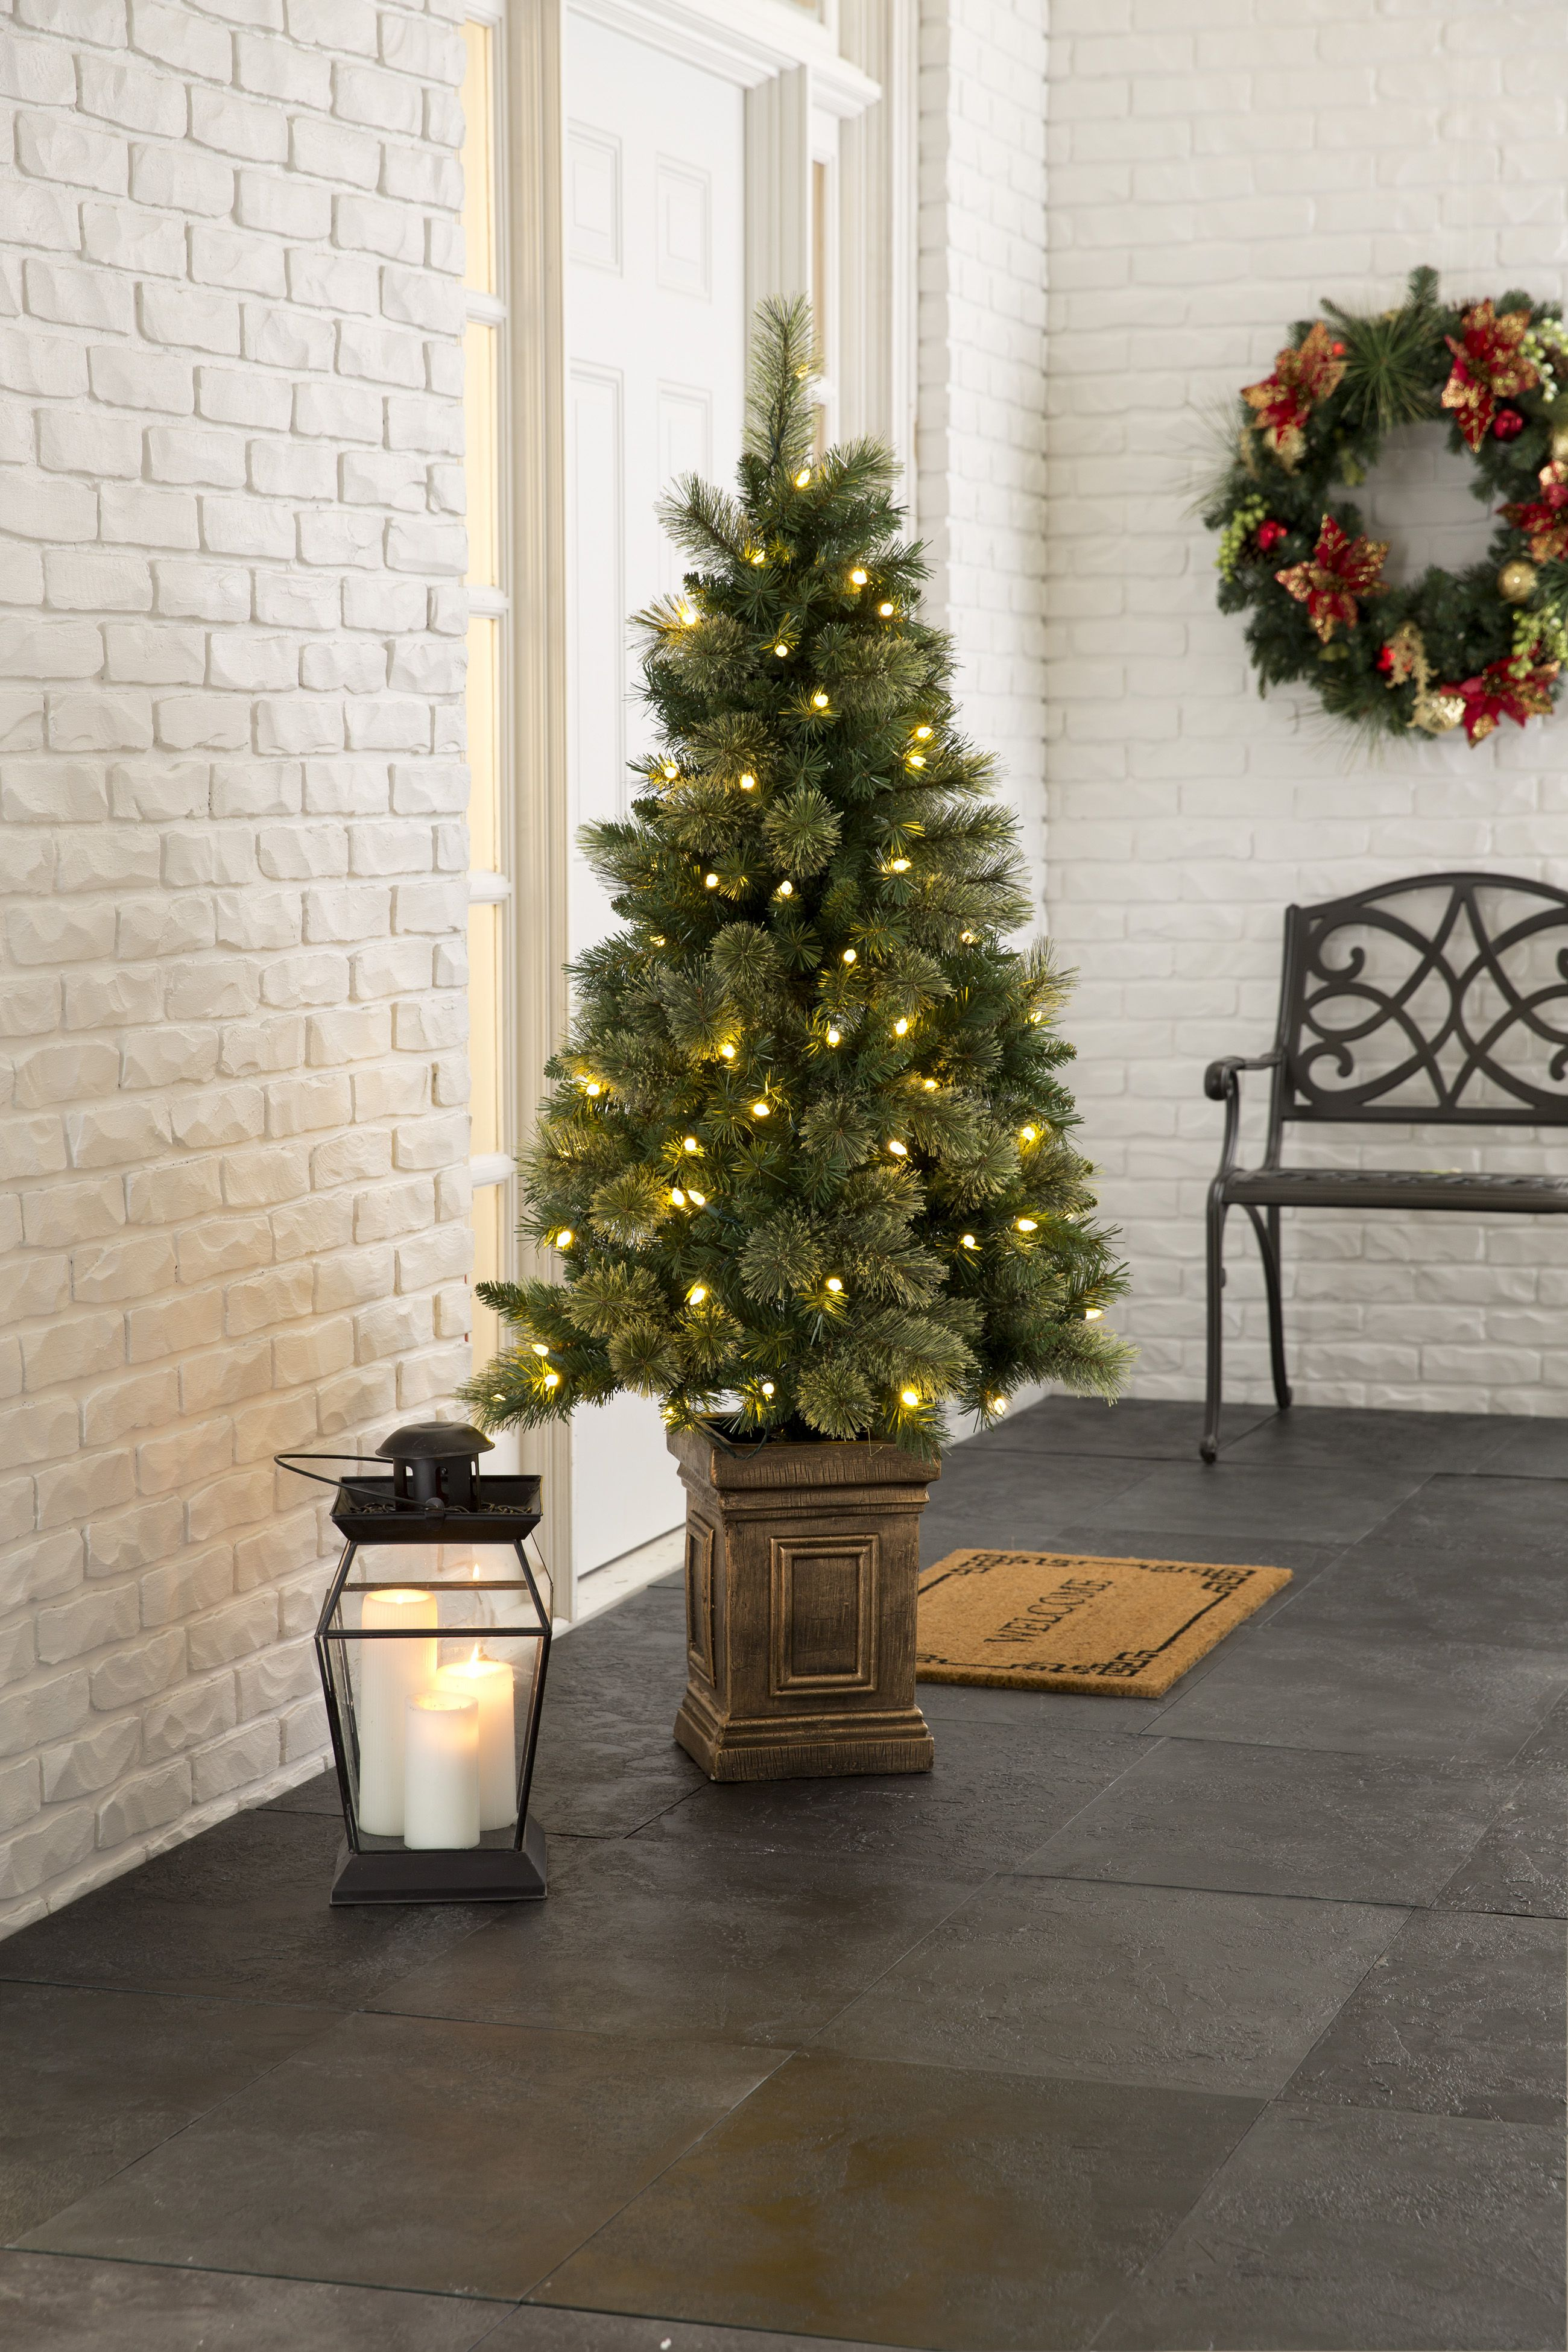 Biltmore Porch Trees Pre Lit Christmas Tree Outdoor Holiday Decor